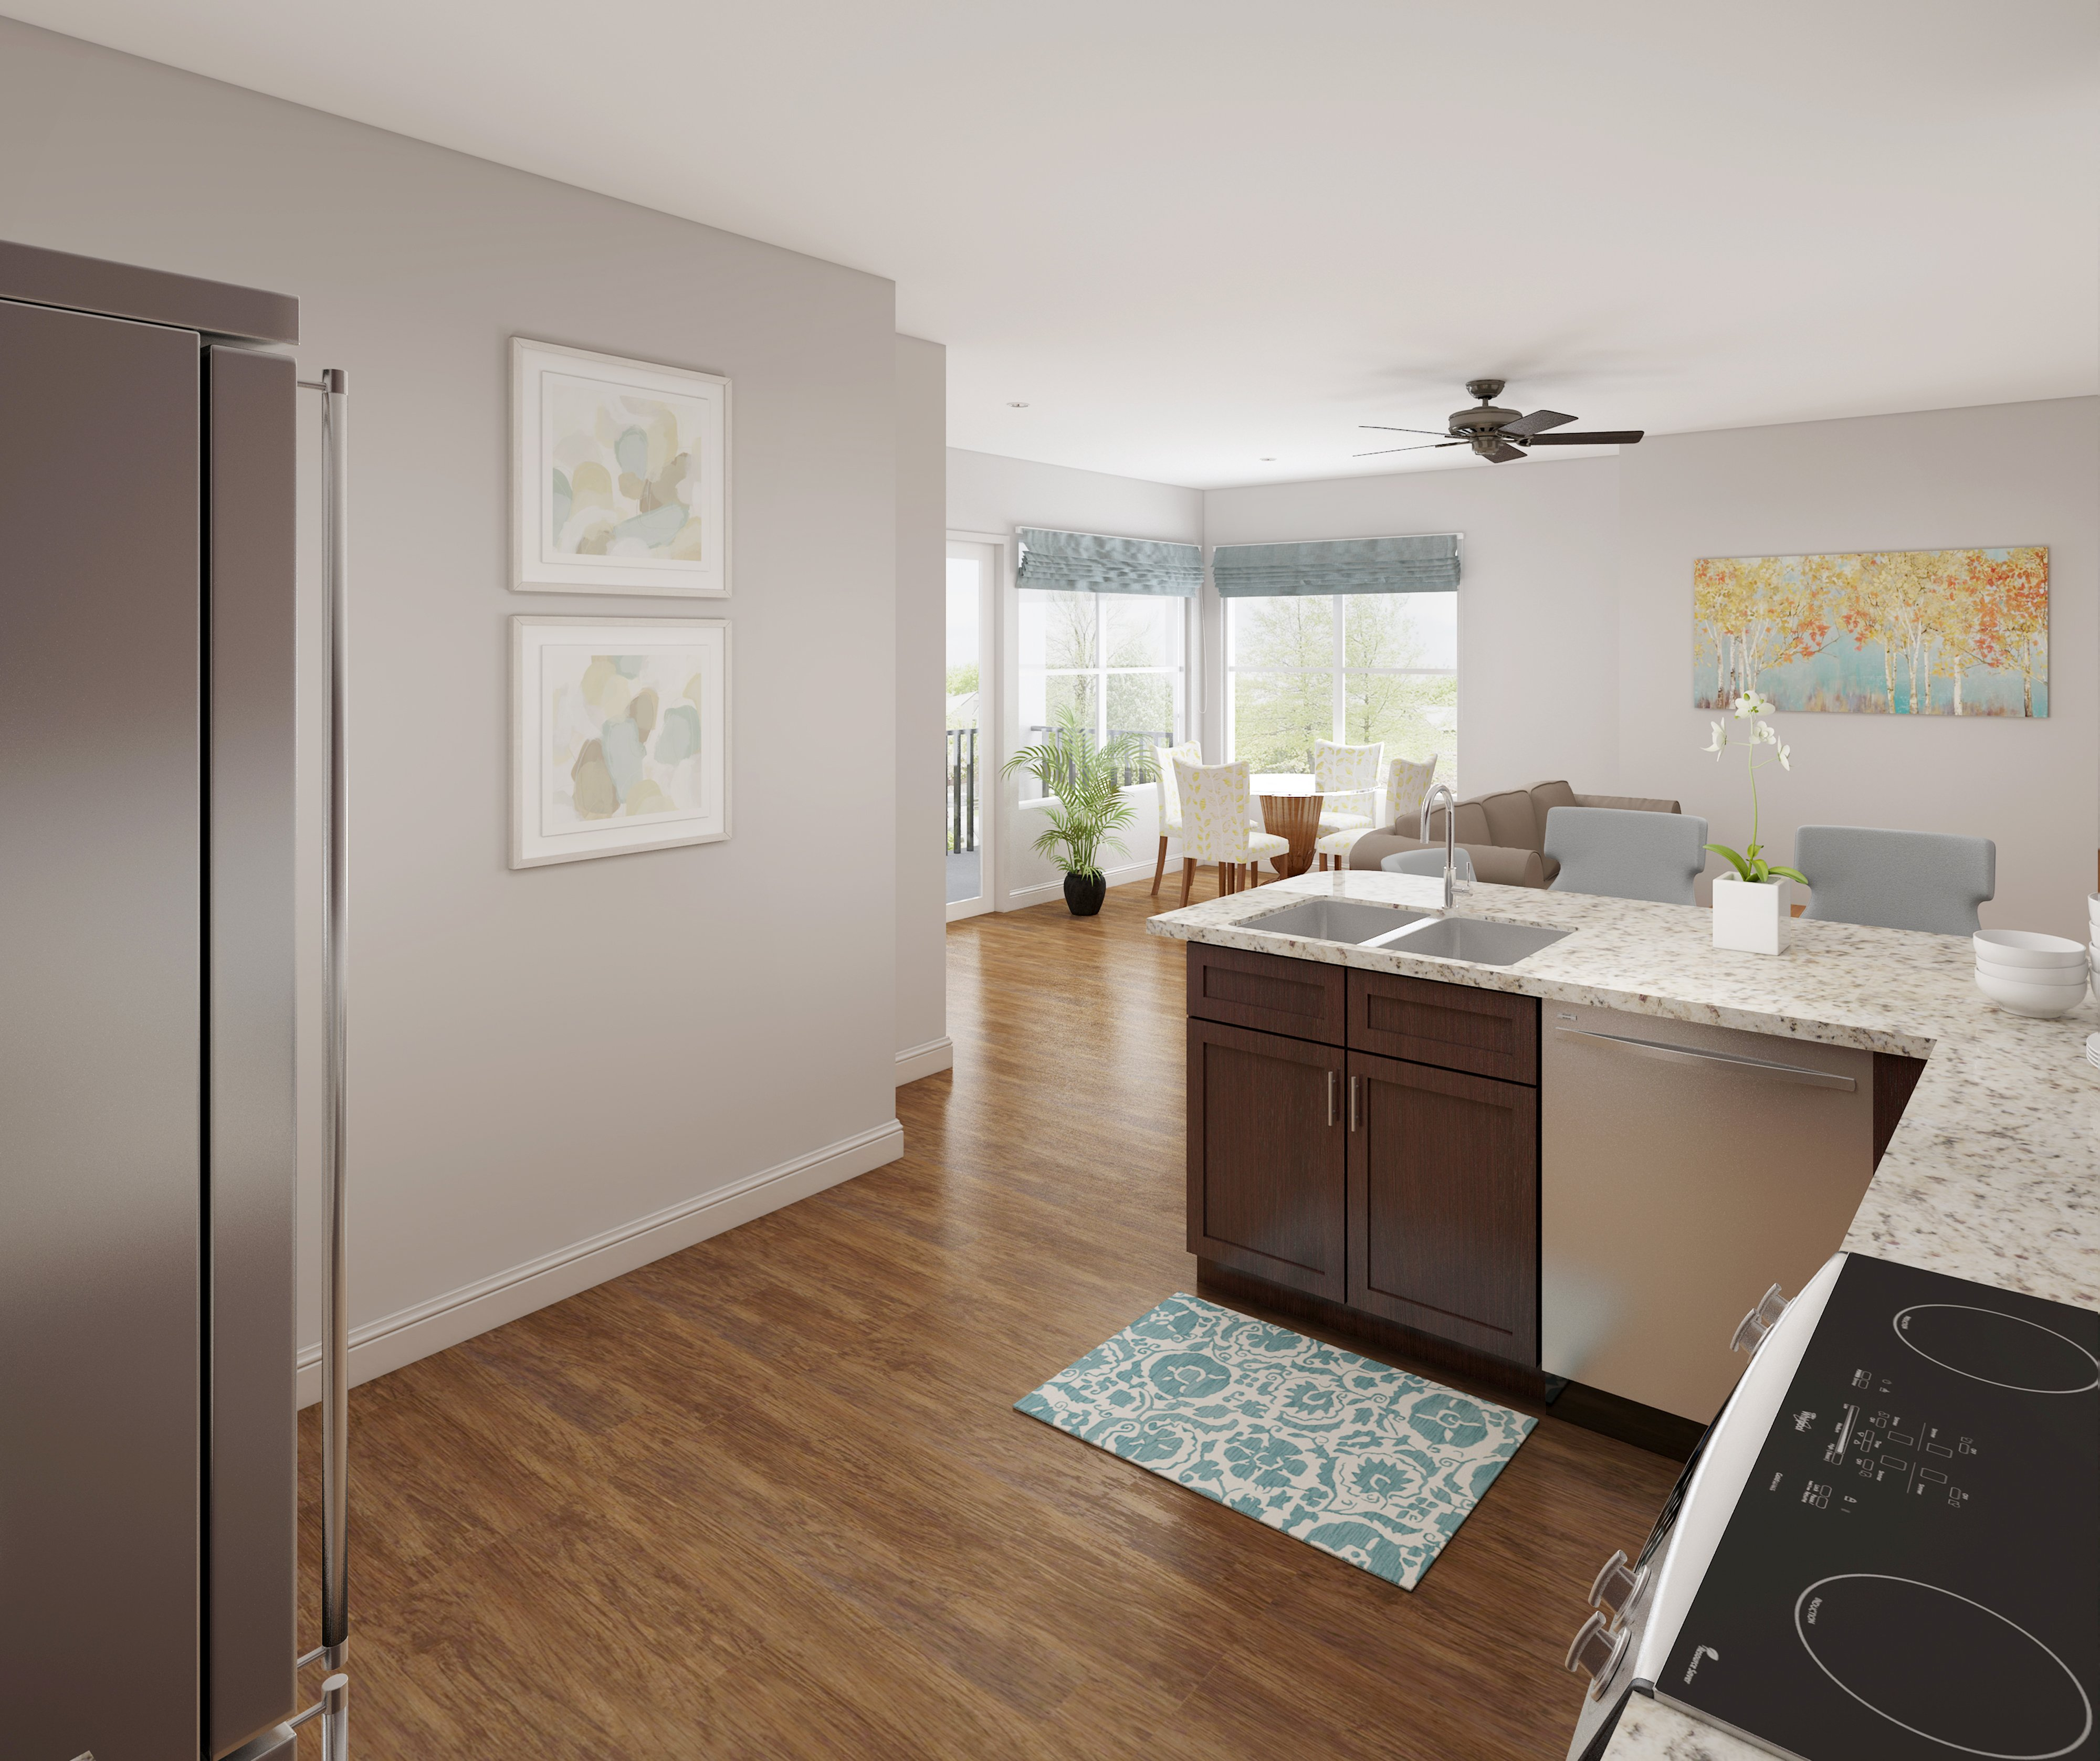 CARRIAGE HILL IDEPENDENT LIVING APARTMENTS